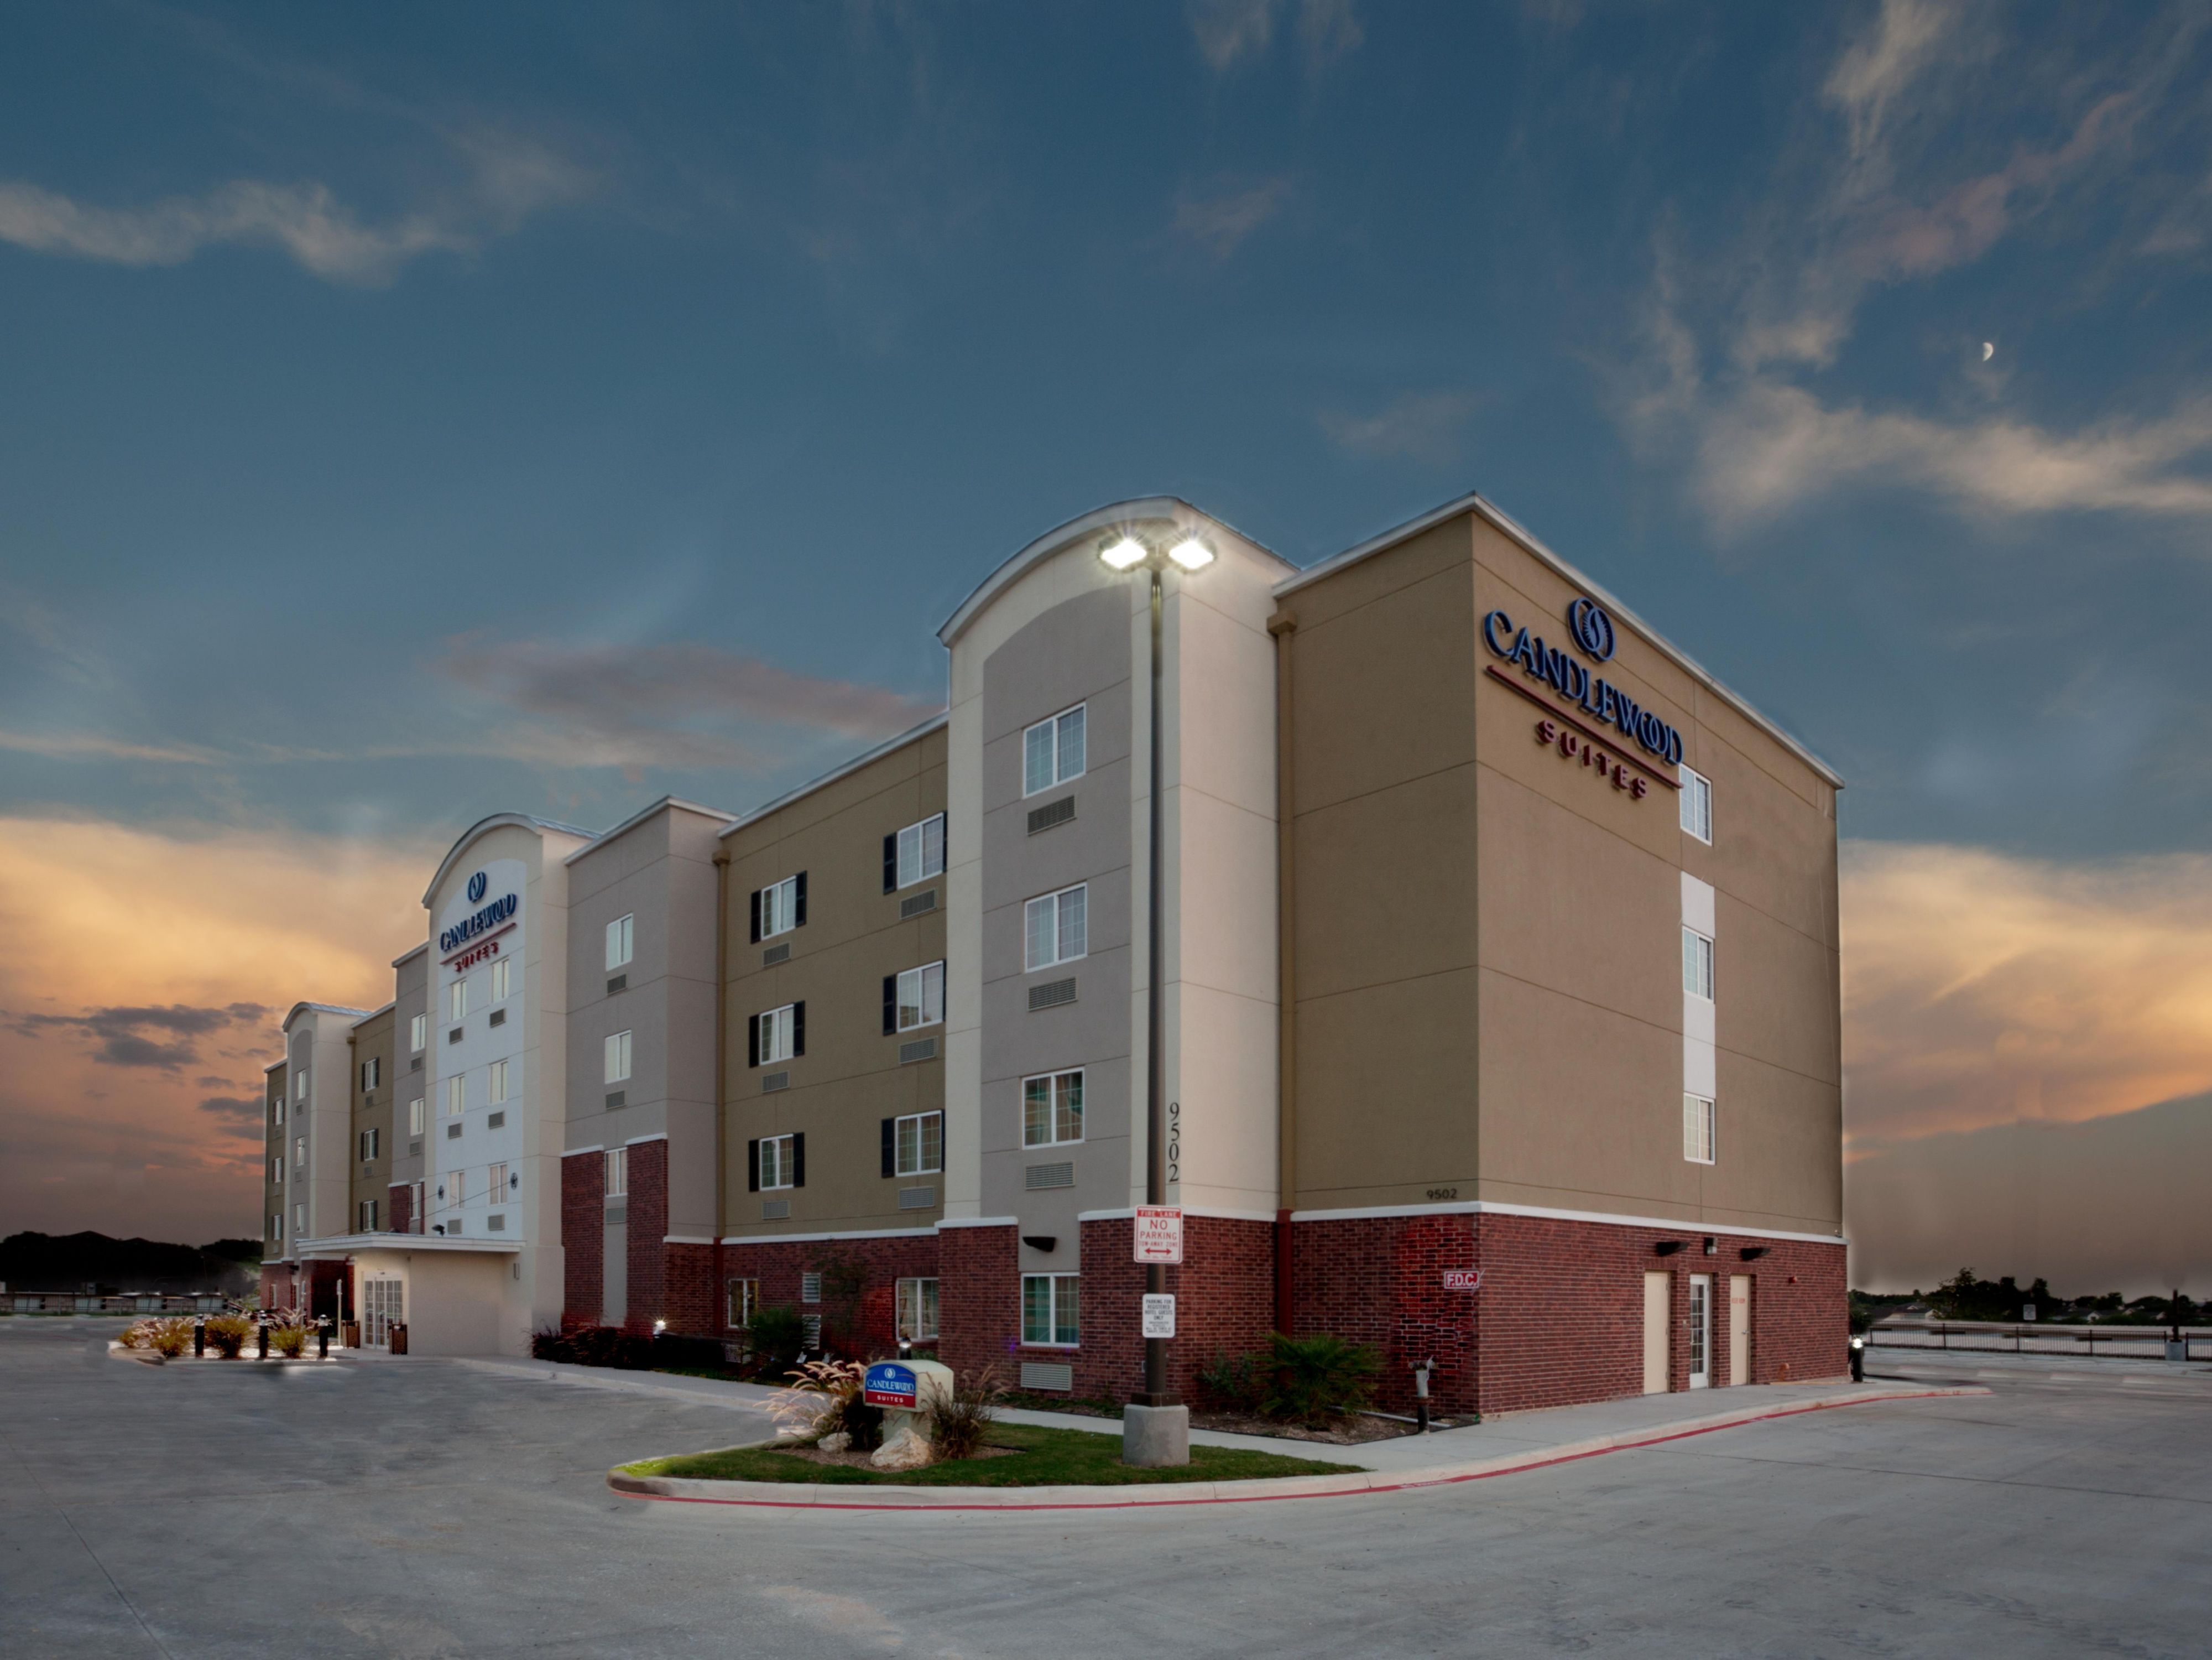 San Antonio Hotels Candlewood Suites Nw Near Seaworld Extended Stay Hotel In Texas